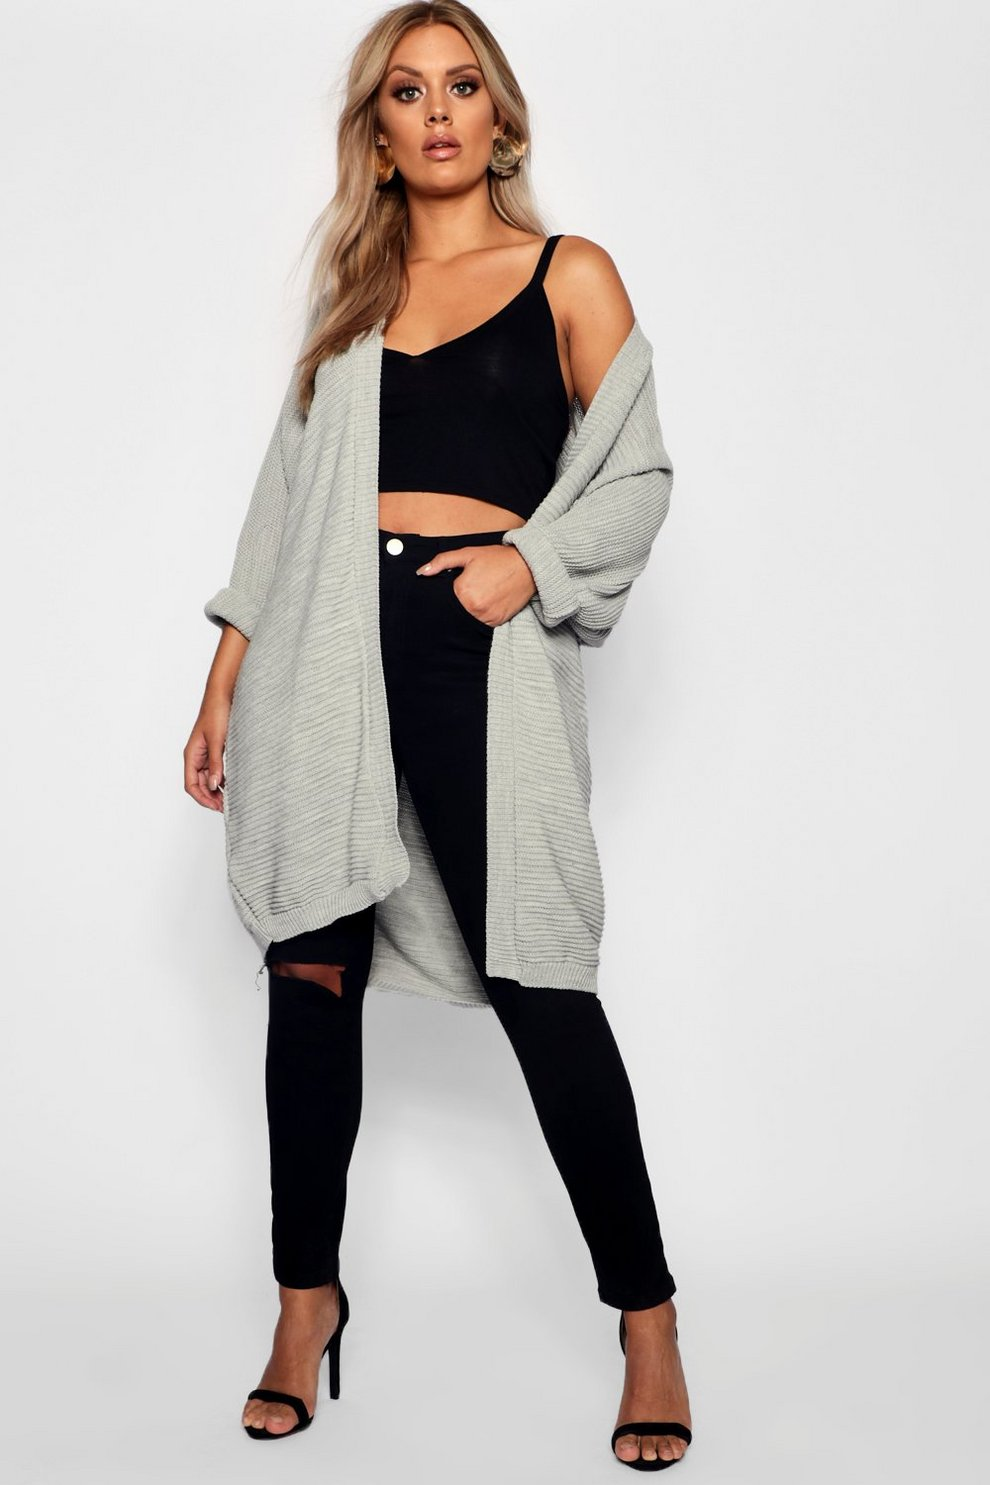 Cocoon Maglia Plus In A Coste Cardigan Oversize vnwNym80O